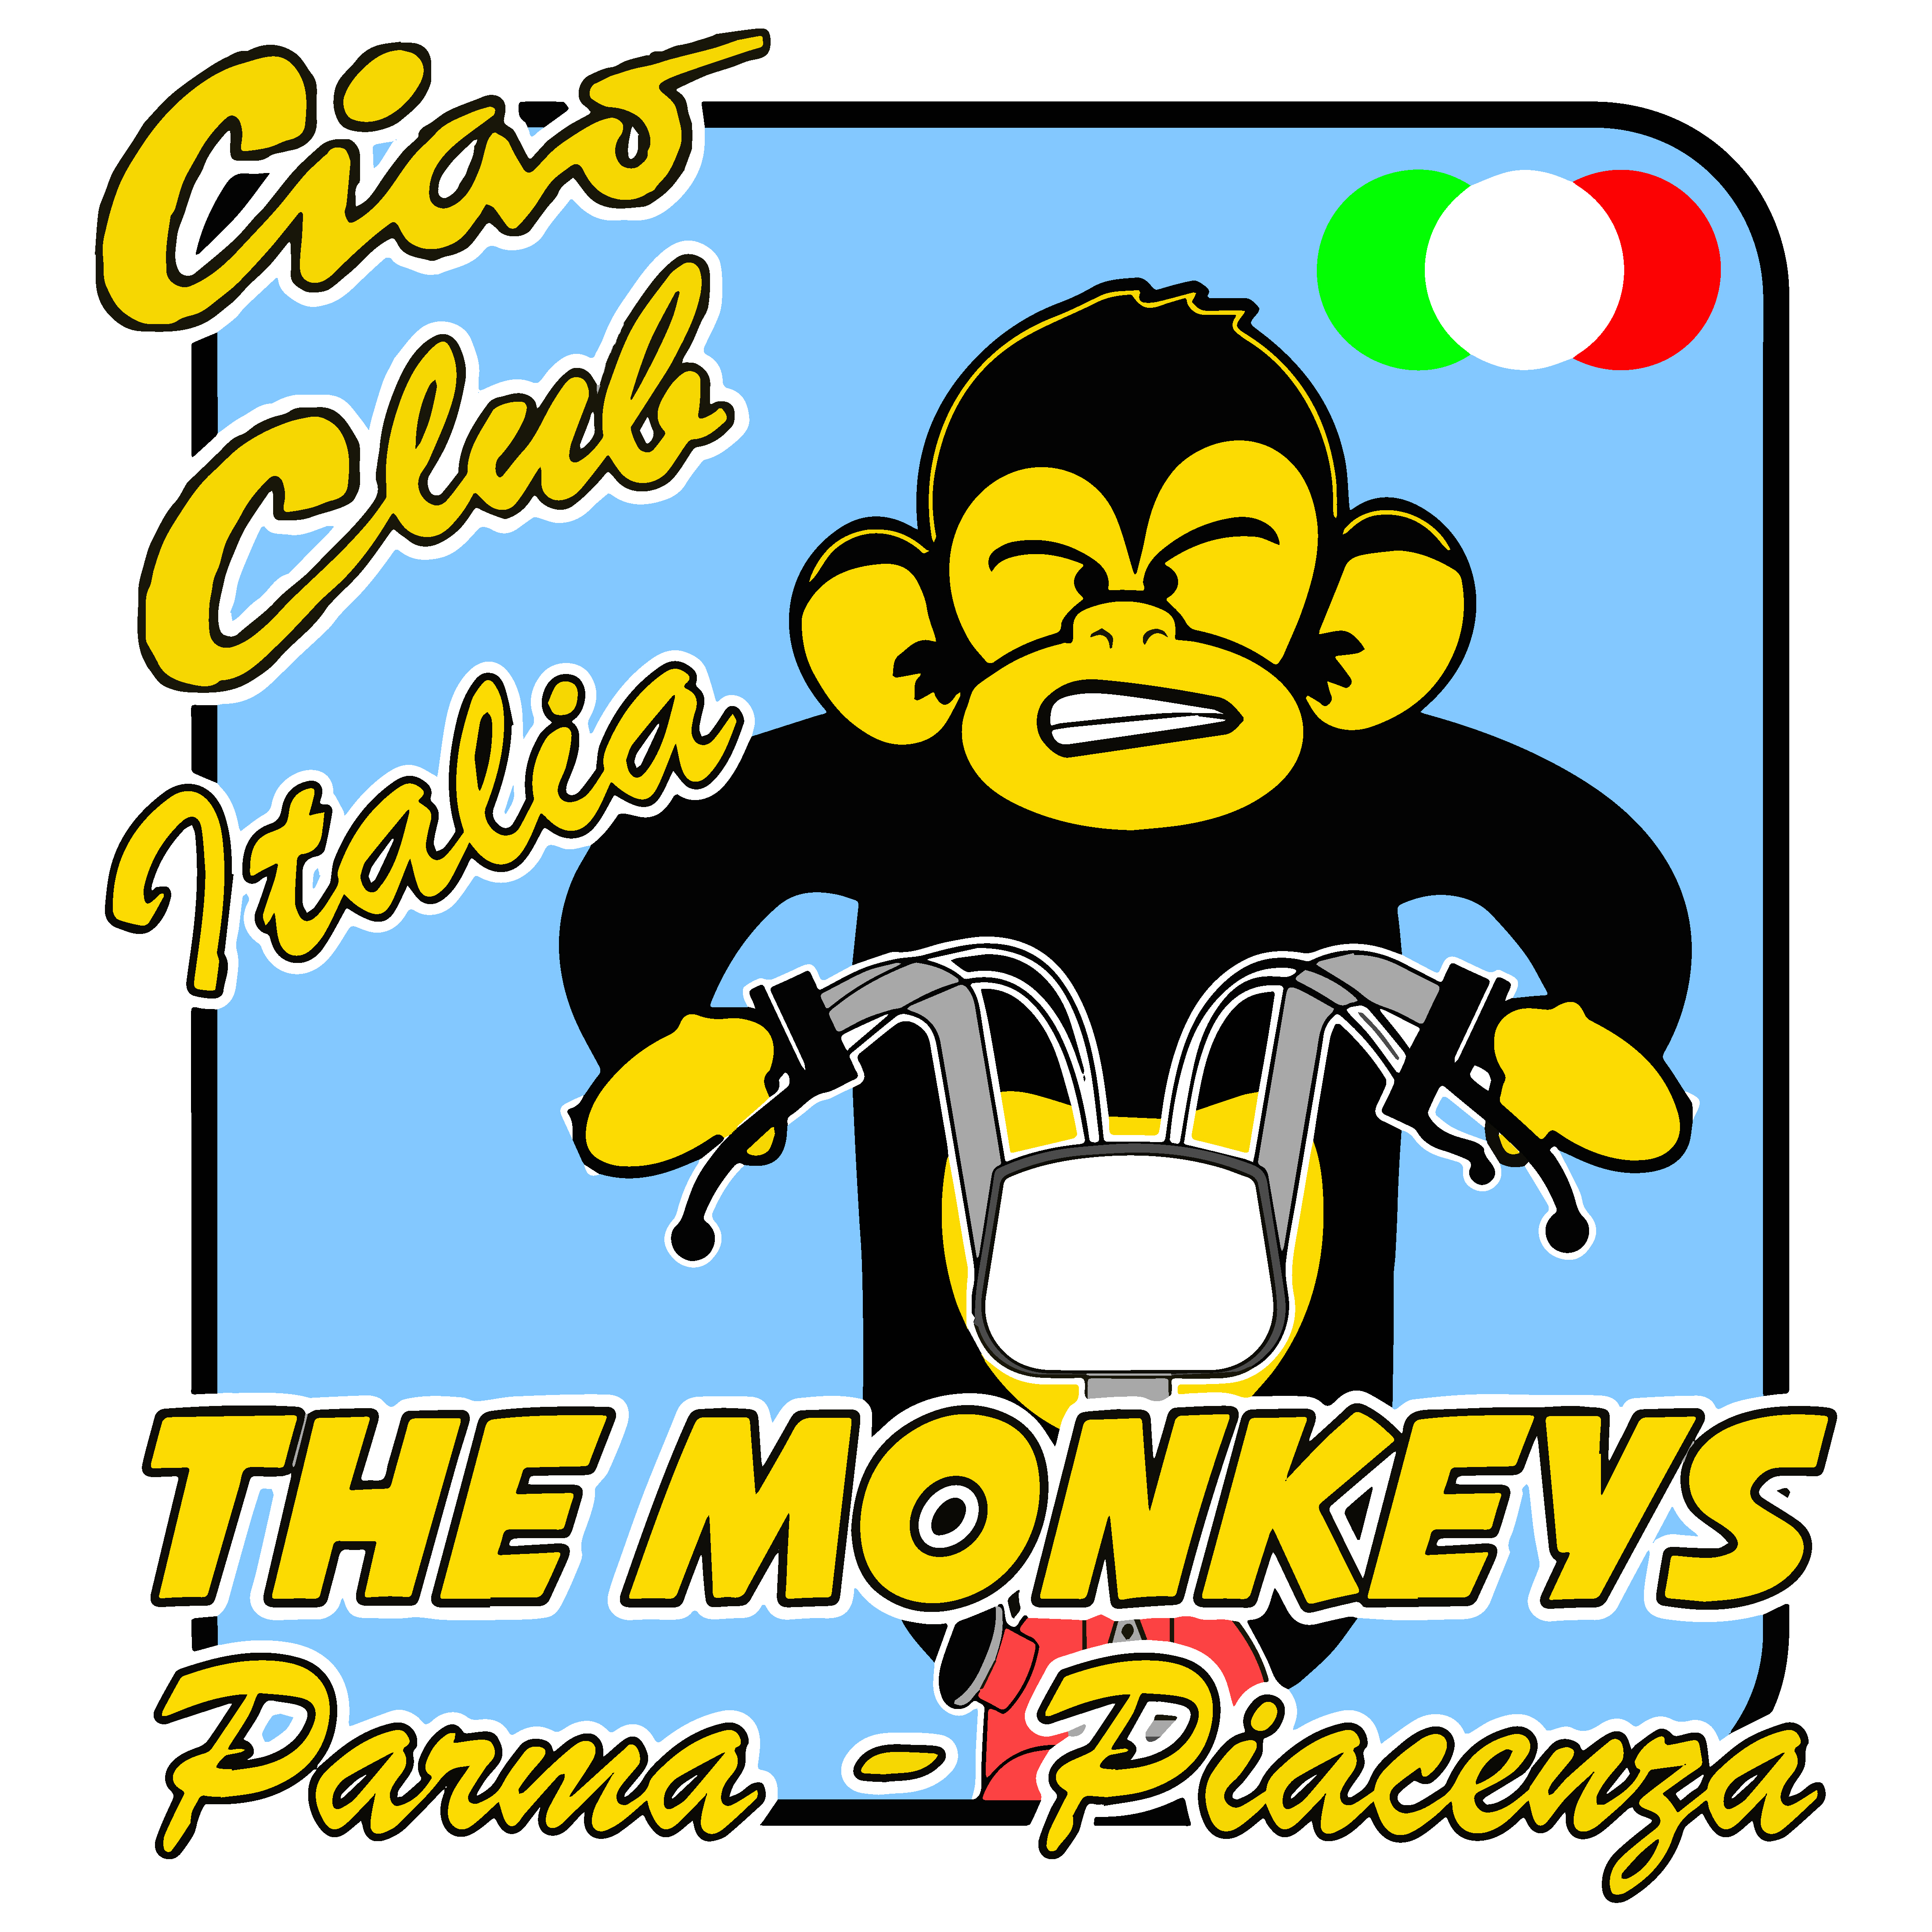 Pagina Facebook Ciao Club